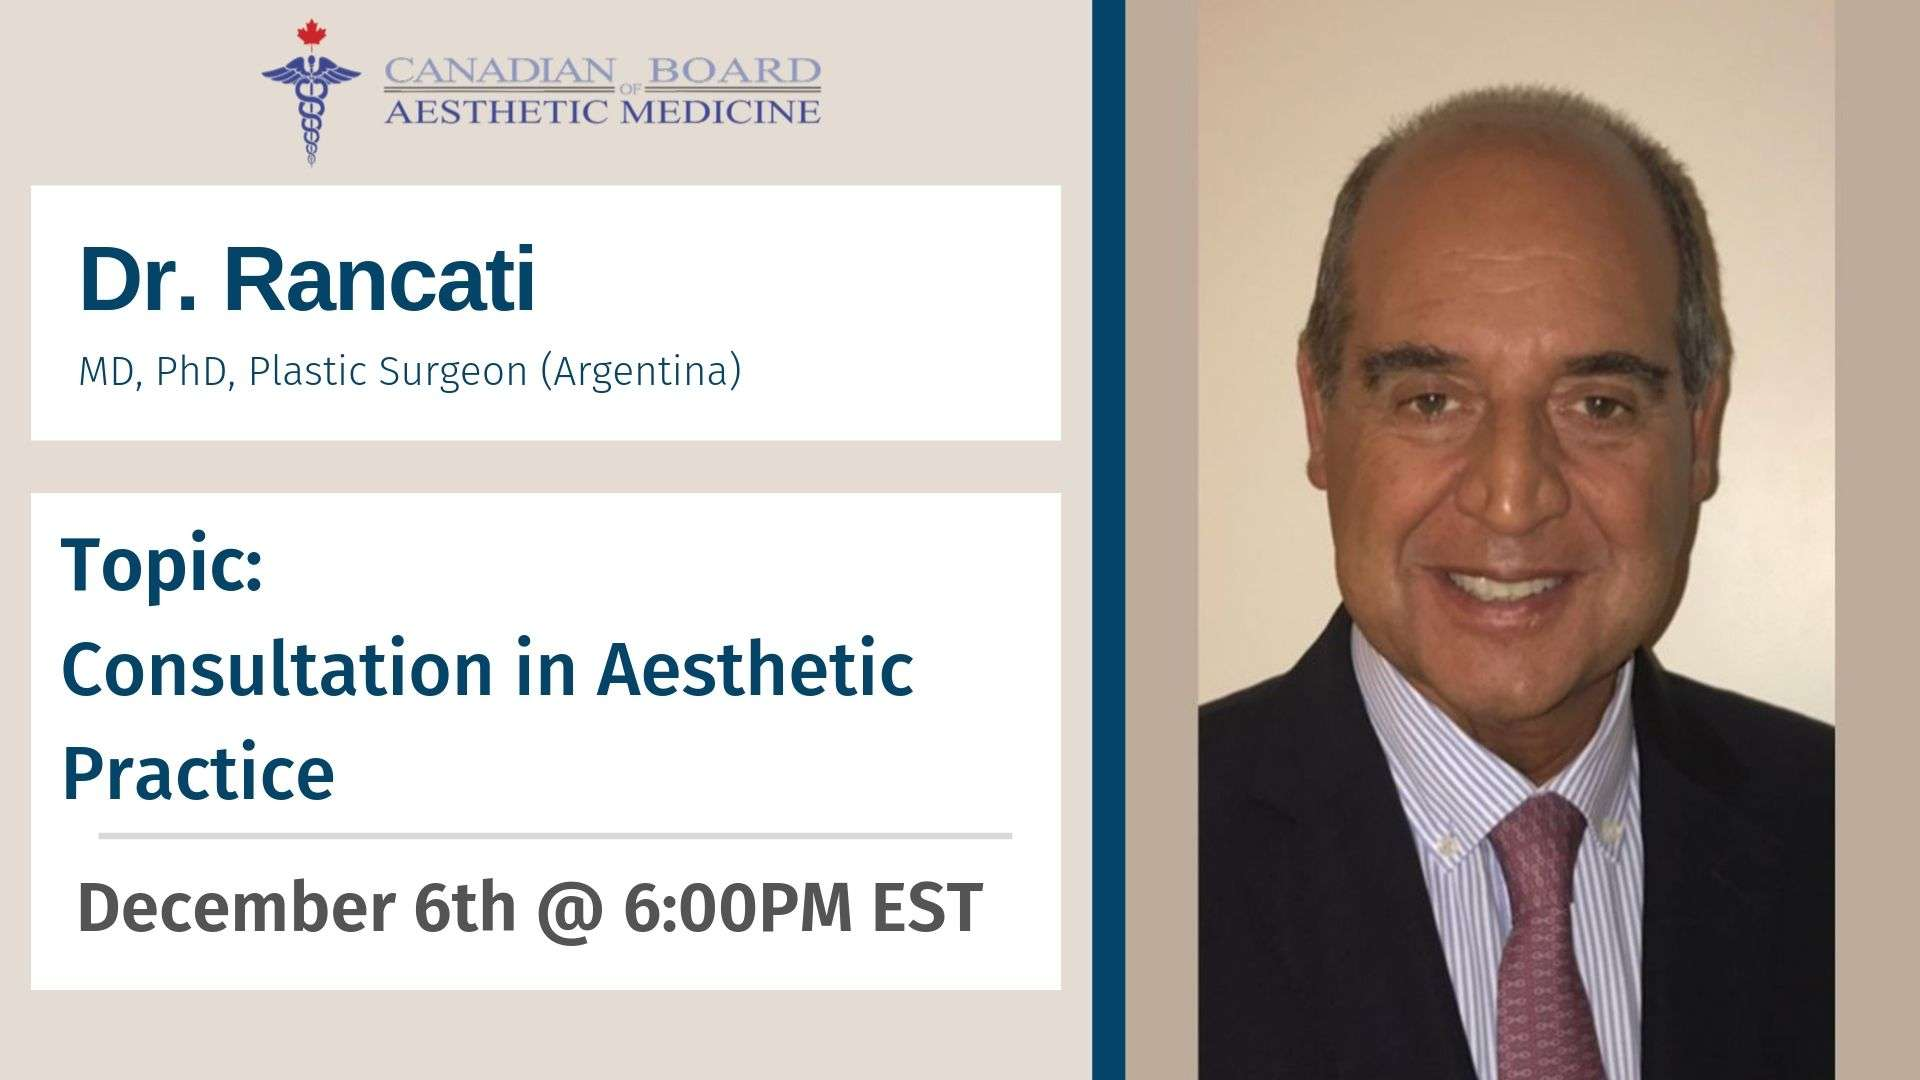 dr. Consultation in Aesthetic Practice - Webinar: Dec 6th at 6:00 pm EST, Dr. Alberto Rancati , doctor, nurses, botox, filler, injection, aesthetic medicine, congress, CBAM, Canadian board of aesthetic medicine